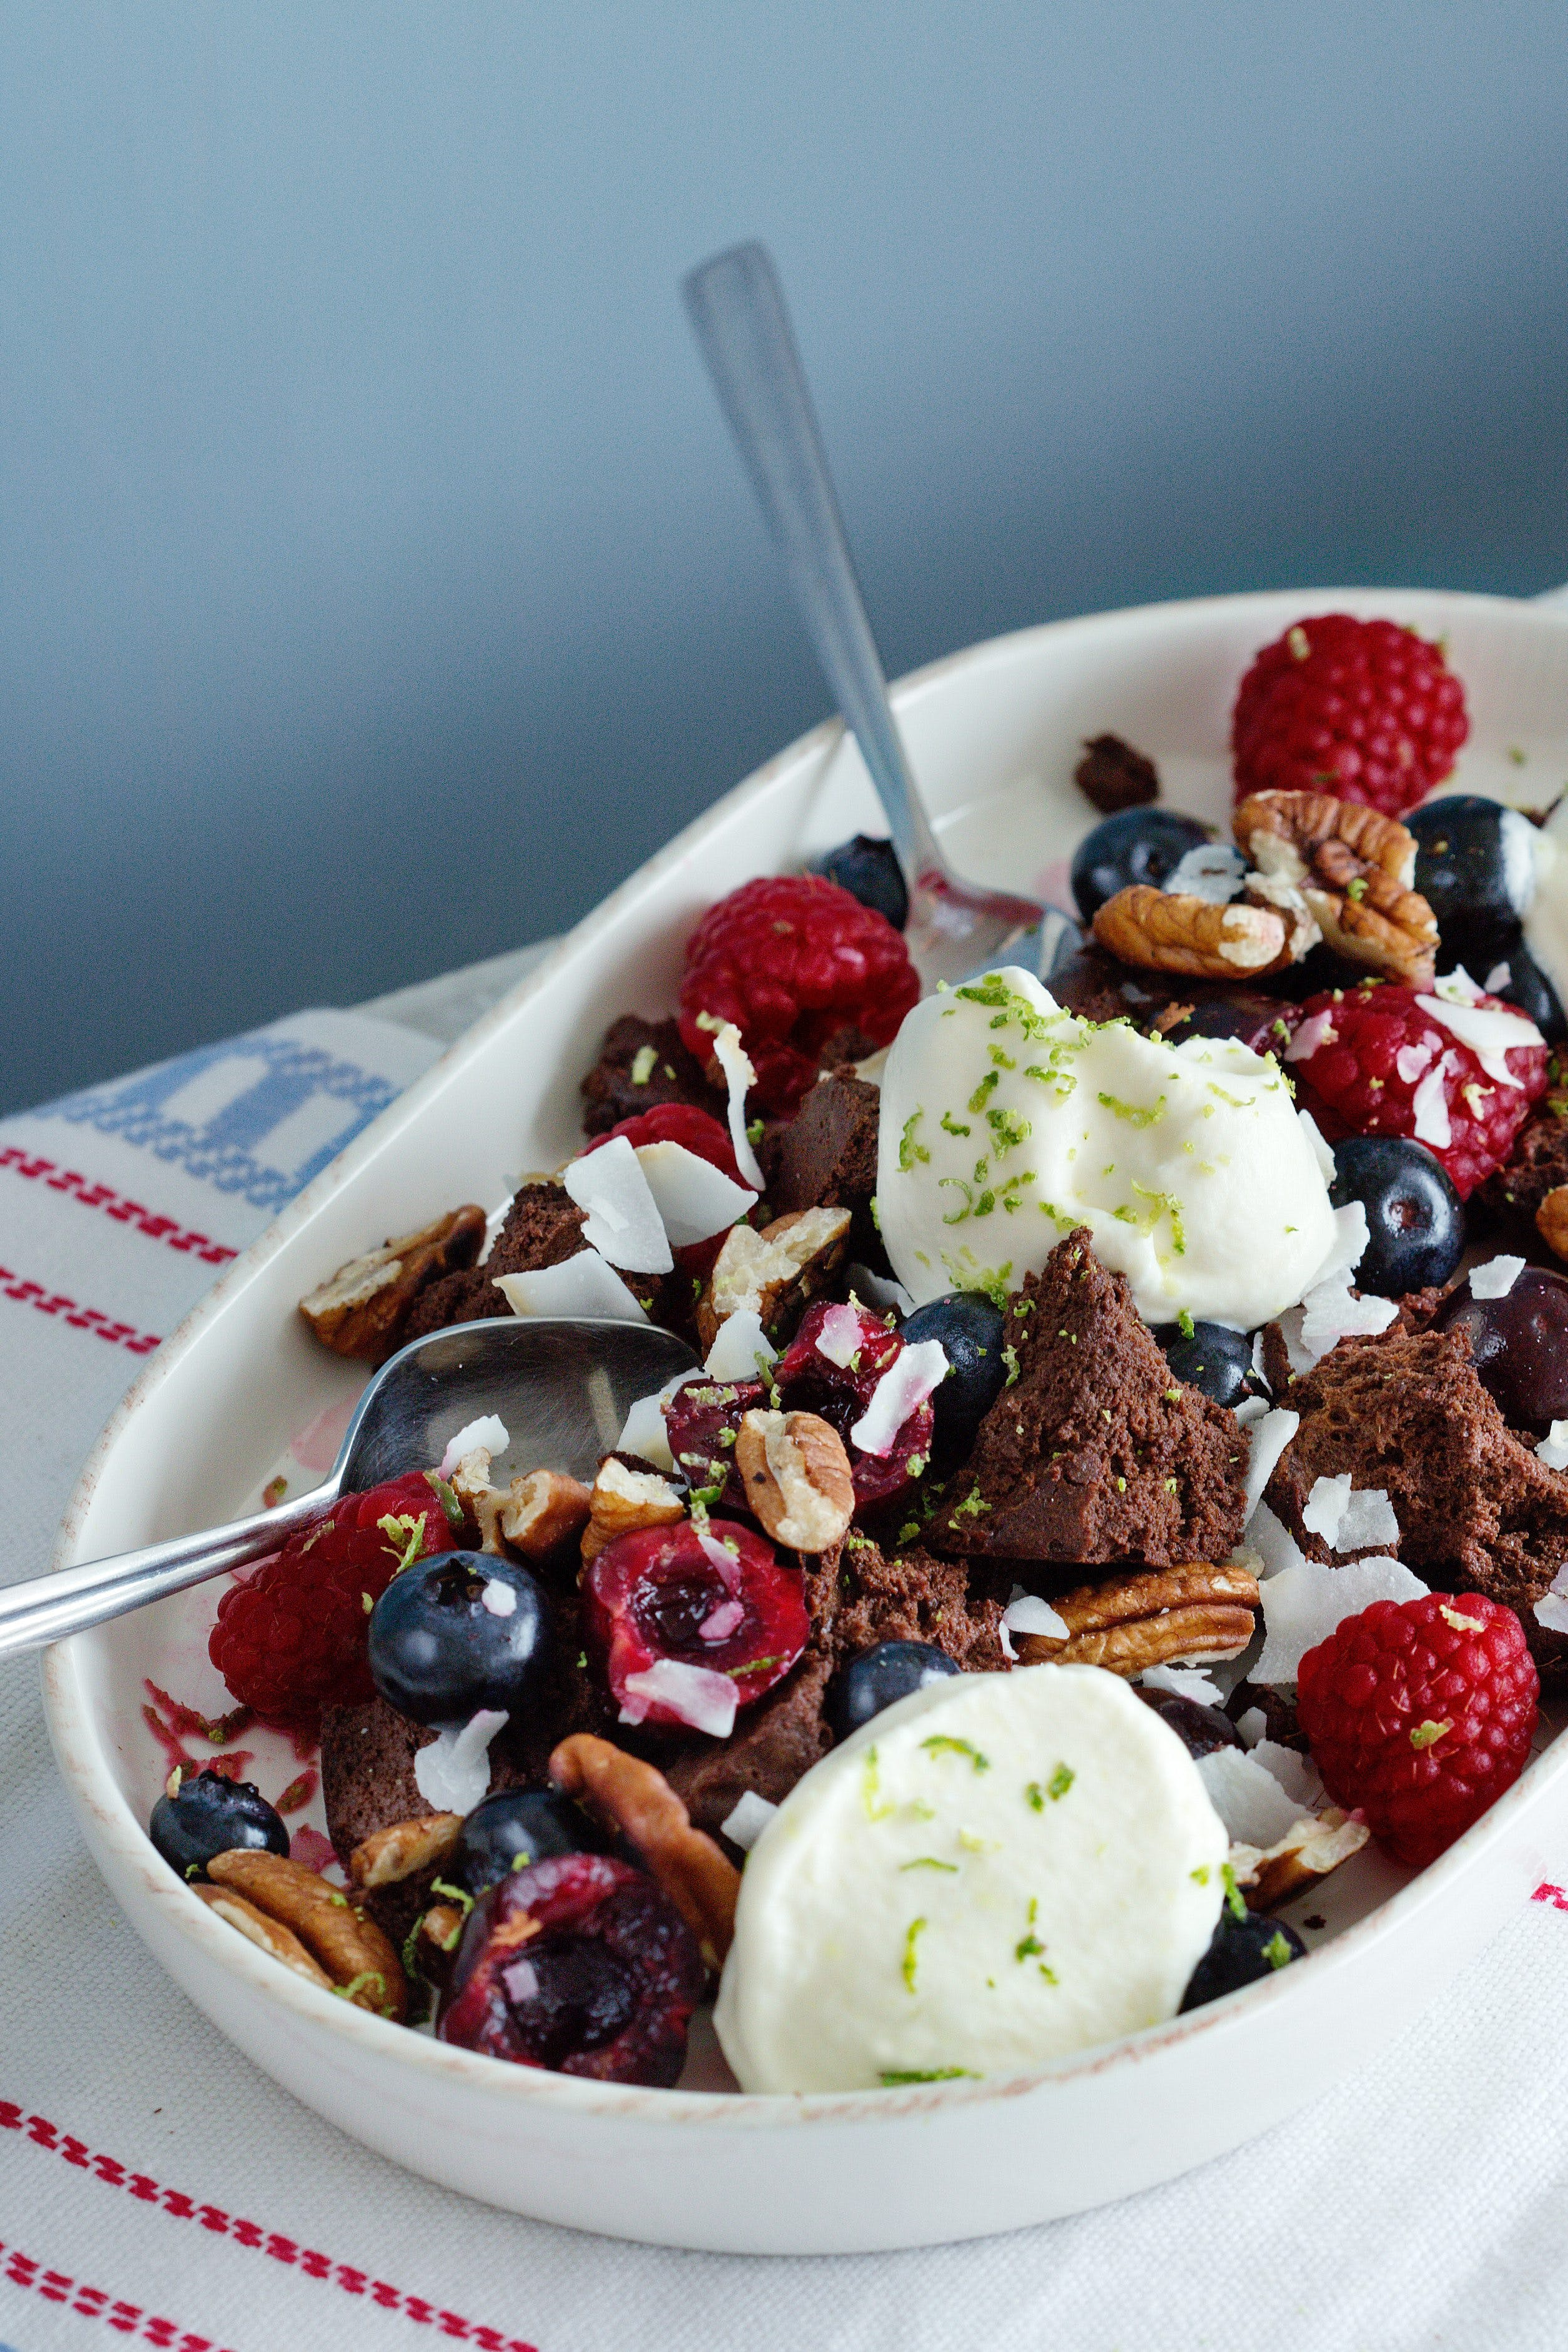 Low-carb chocolate mess with berries and cream